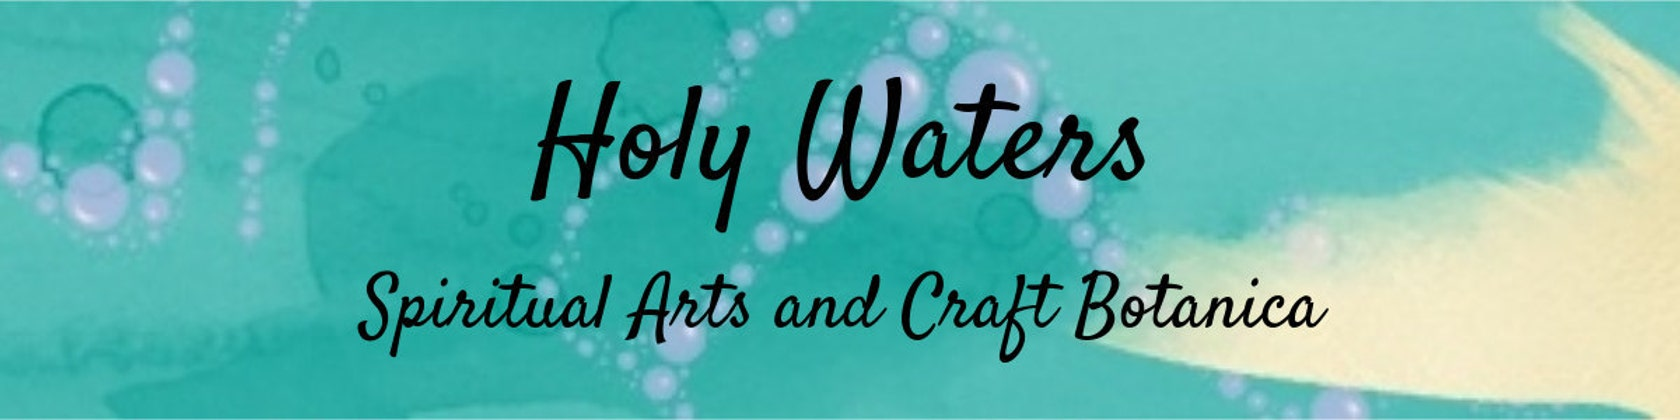 Spiritual Arts And Craft Botanica By Holywaters On Etsy